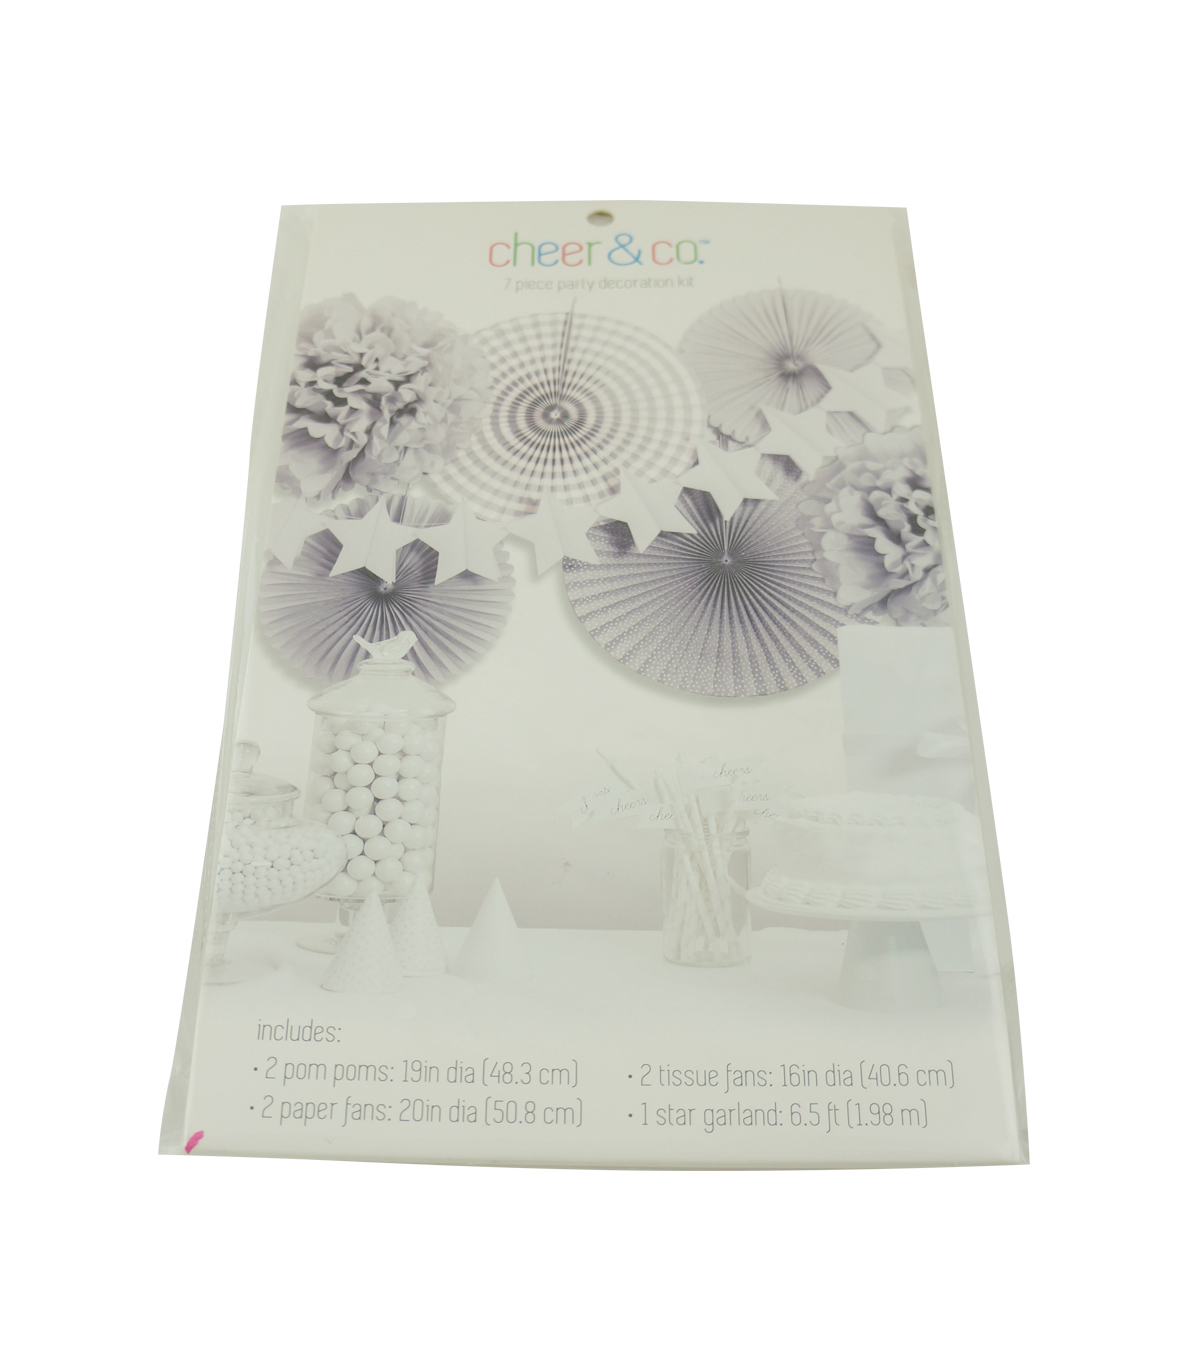 Cheer & Co 7pc Party Decoration Kit-Pearlized Gray